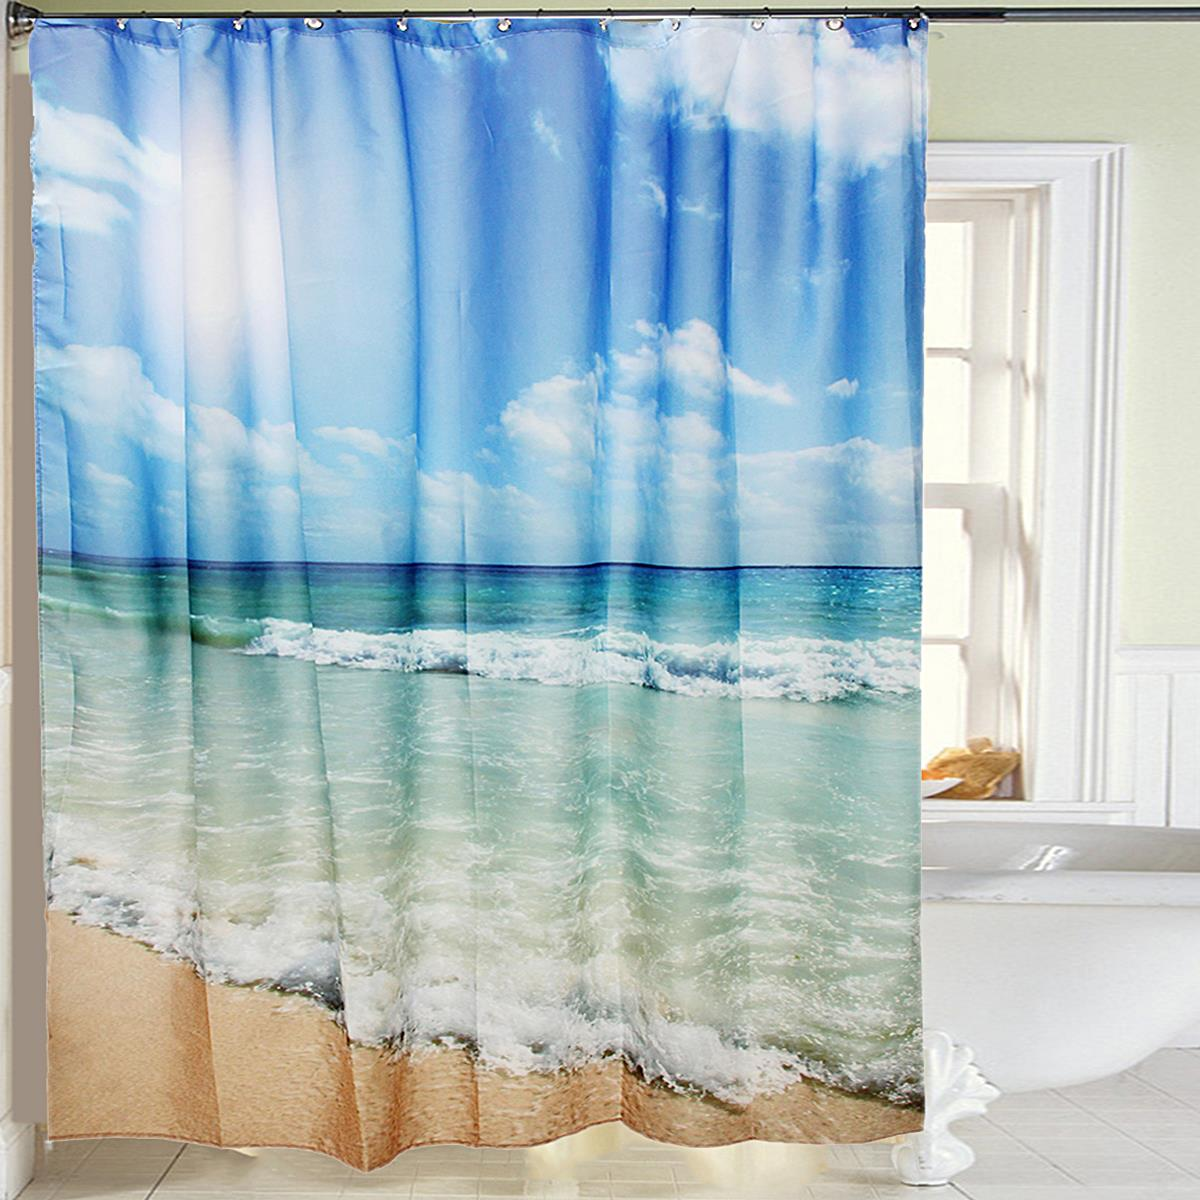 Beachy shower curtains - Aliexpress Com Buy Waterproof Polyester Sea Beach Shower Curtain Shower Bath Screen Cover Sheer Fabric Home Bathroom Decor Textiles Accessories From